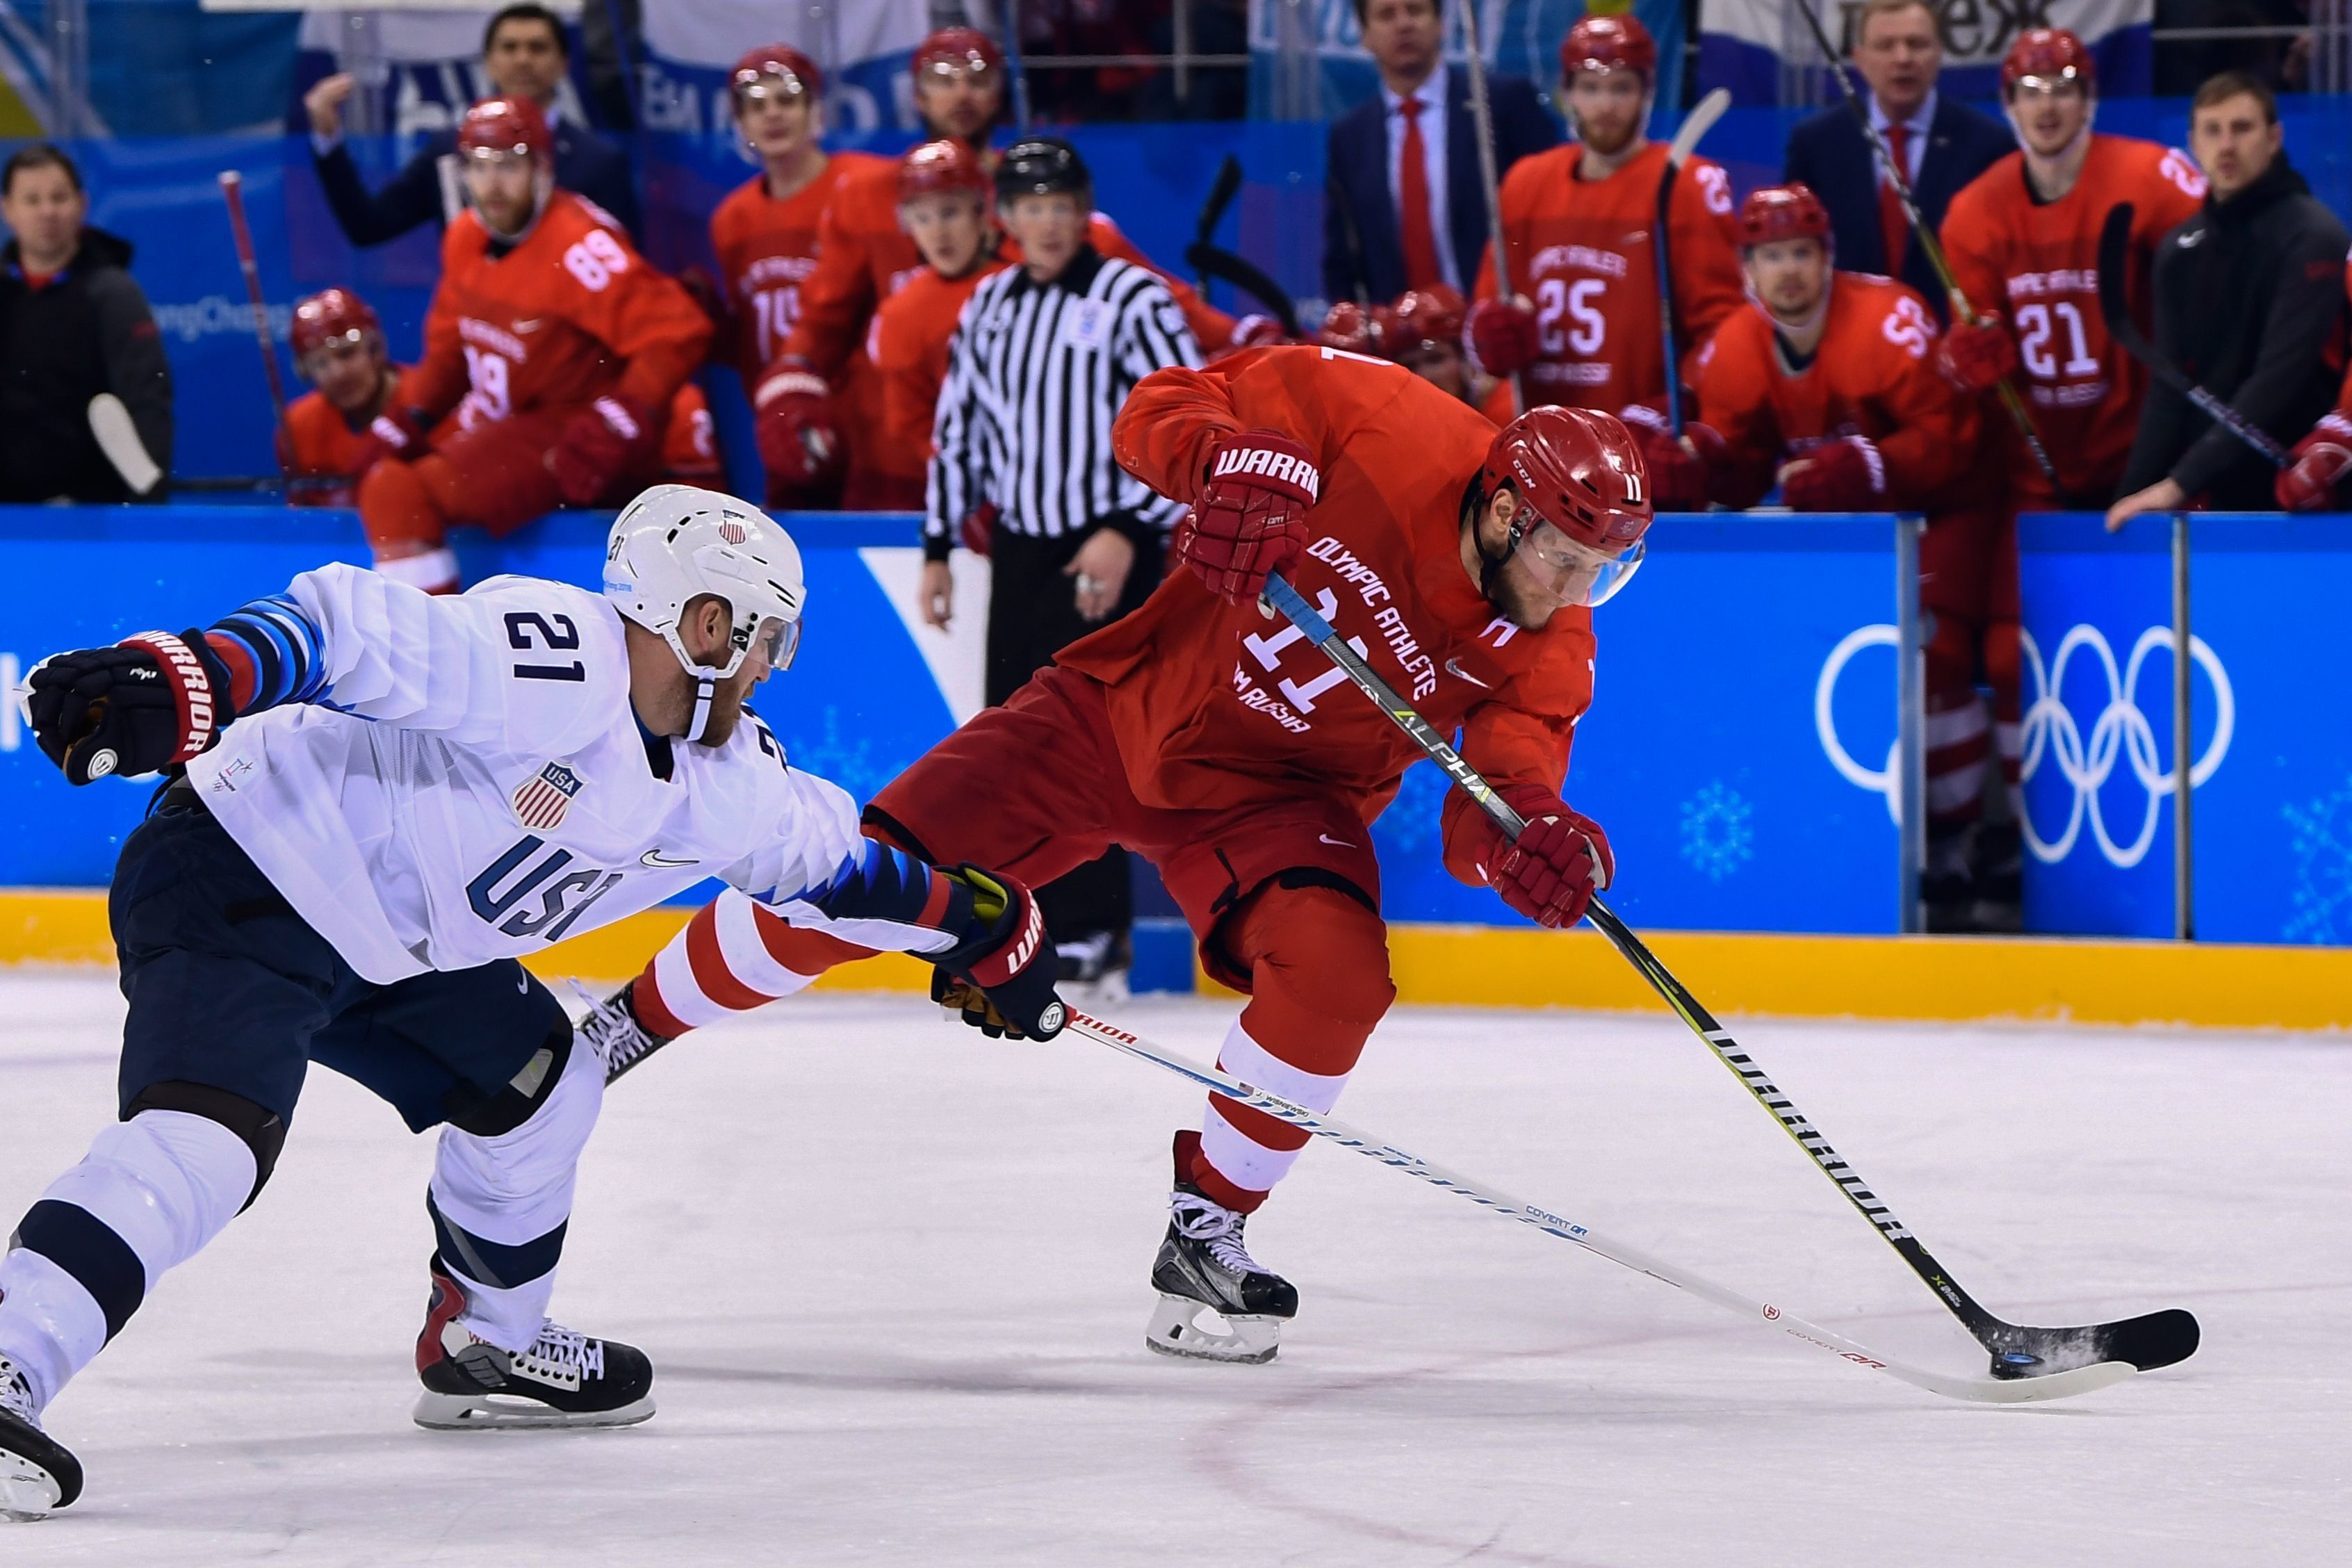 James Wisniewski and Sergei Andronov fight for the puck inSaturday's hockey match between the U.S. and the Olympic Athl